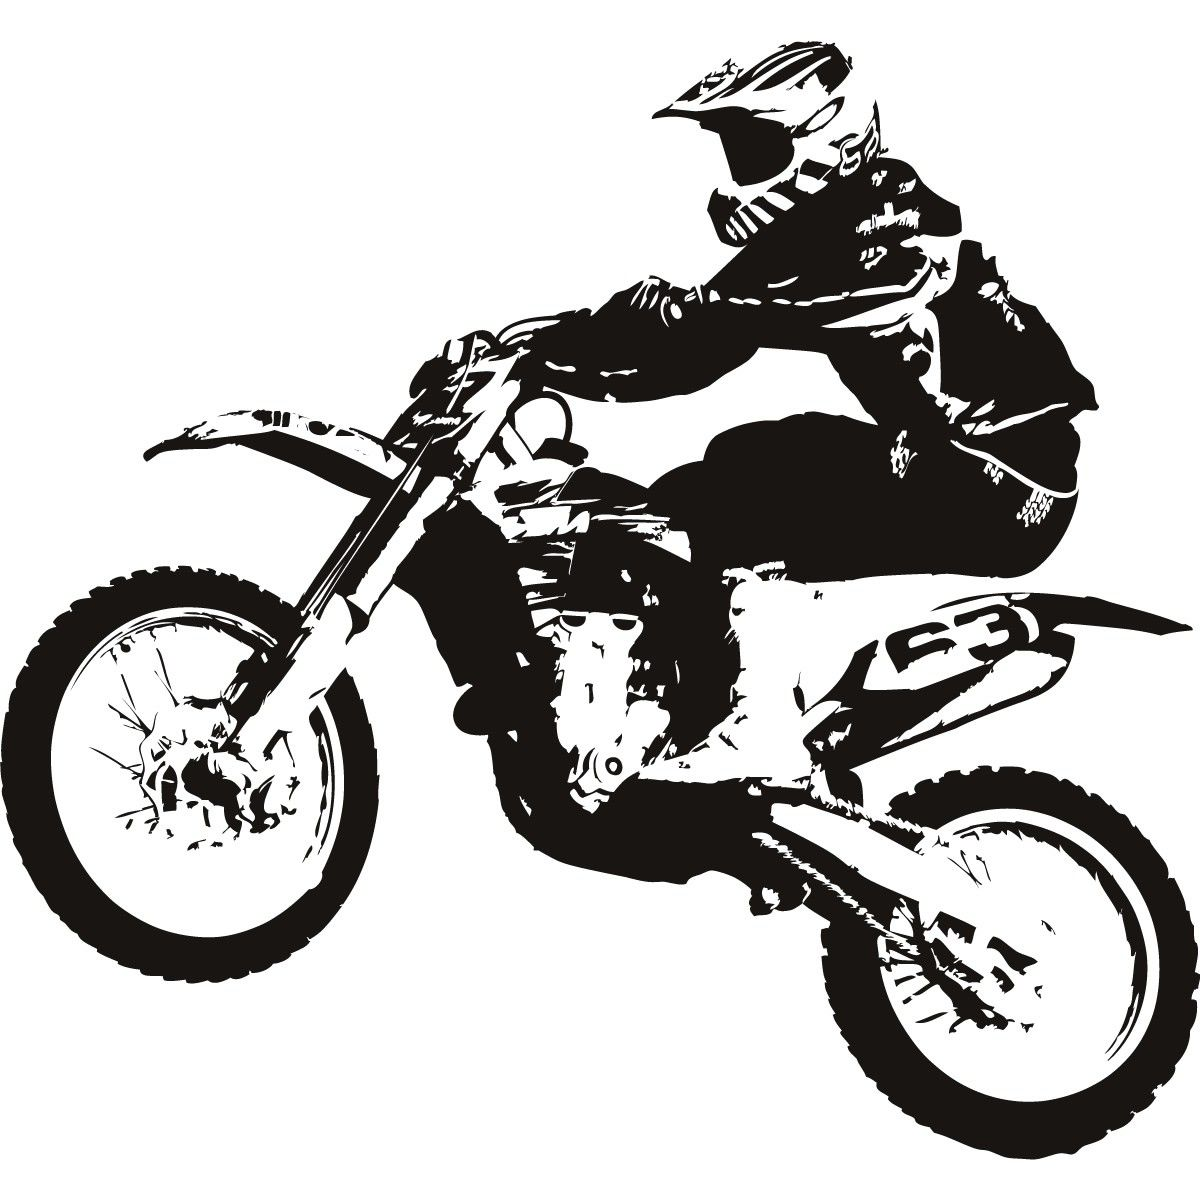 free download motocross bike clipart for your creation motor rh pinterest com dirt bike clipart black and white dirt bike rider clipart